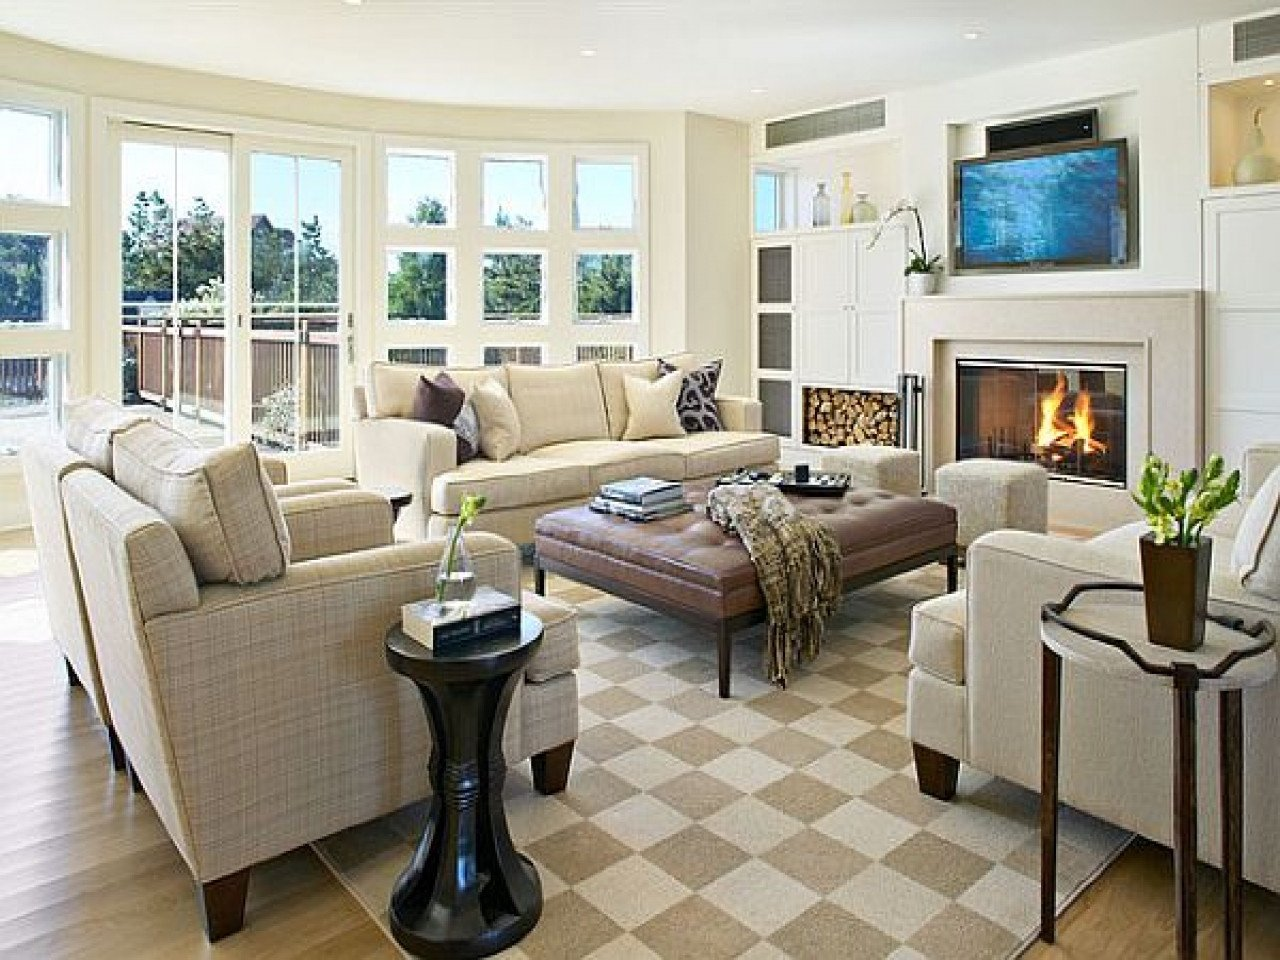 Comfortable Living Room Decorating Ideas Luxury Living Room Furniture Arrangement Living Room Ideas with Fireplace fortable Living Room